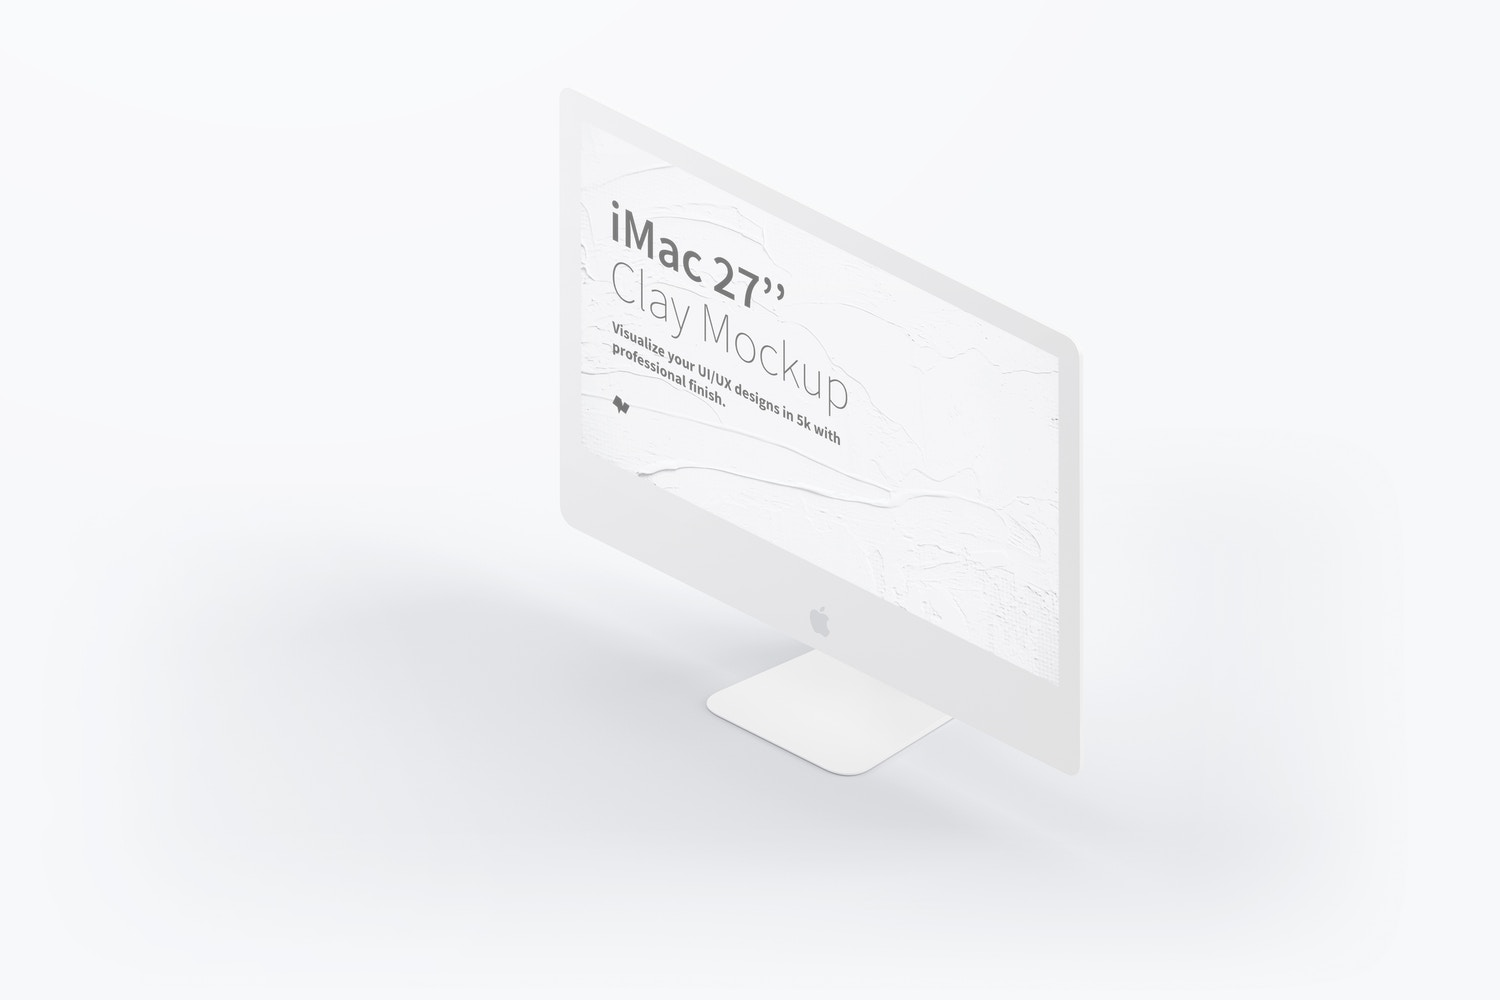 "Clay iMac 27"" Mockup, Isometric Right View by Original Mockups on Original Mockups"